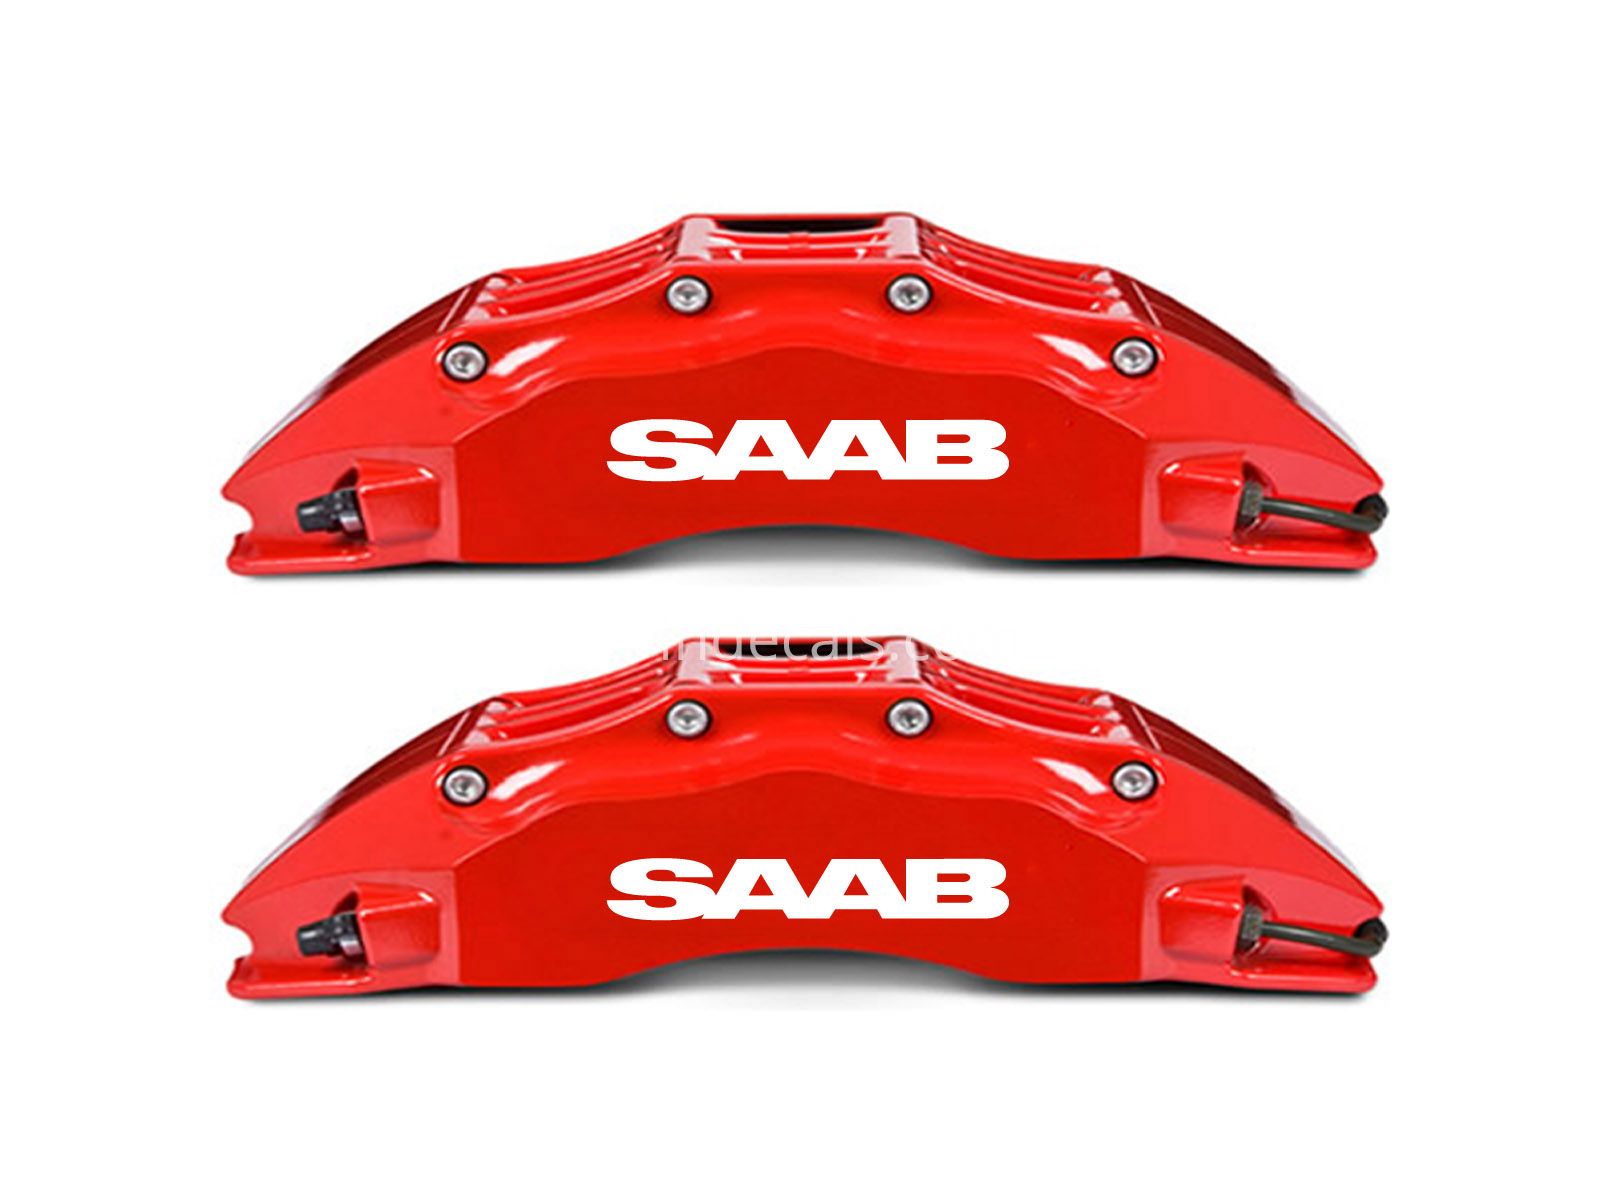 6 x Saab Stickers for Brakes - White